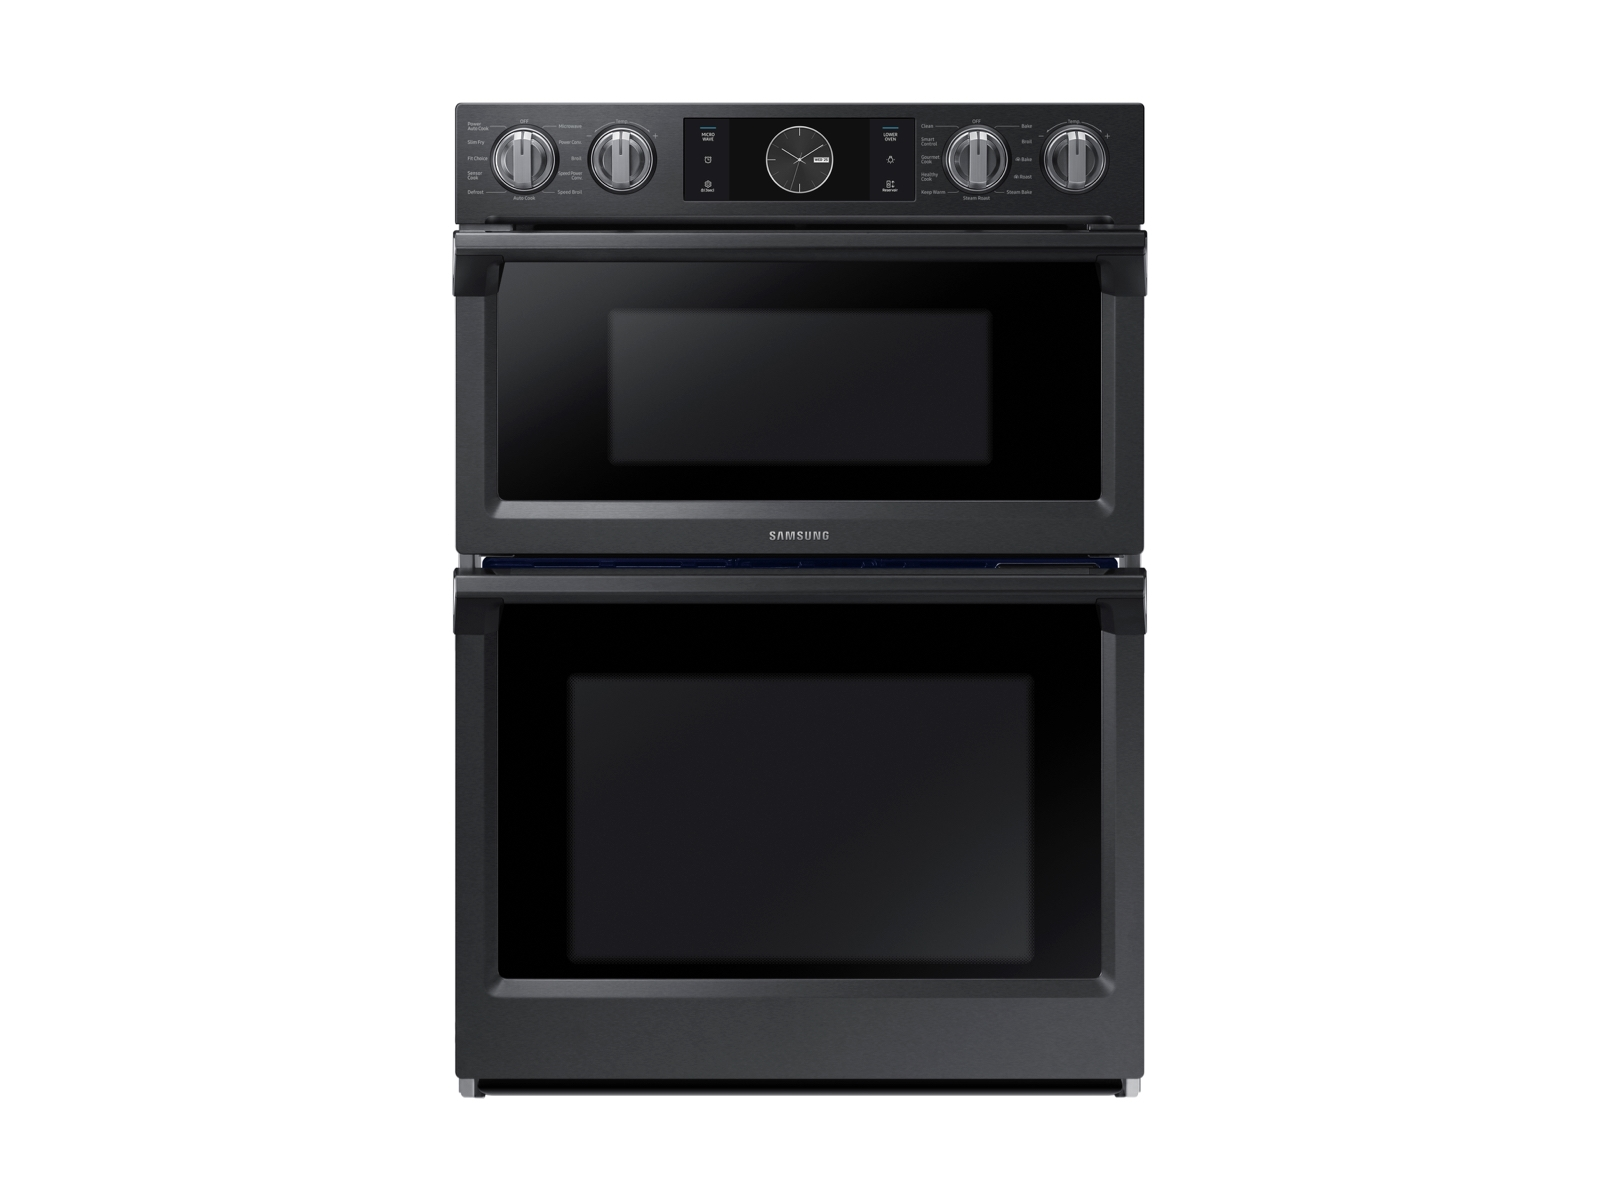 House Wiring To A Wall Oven